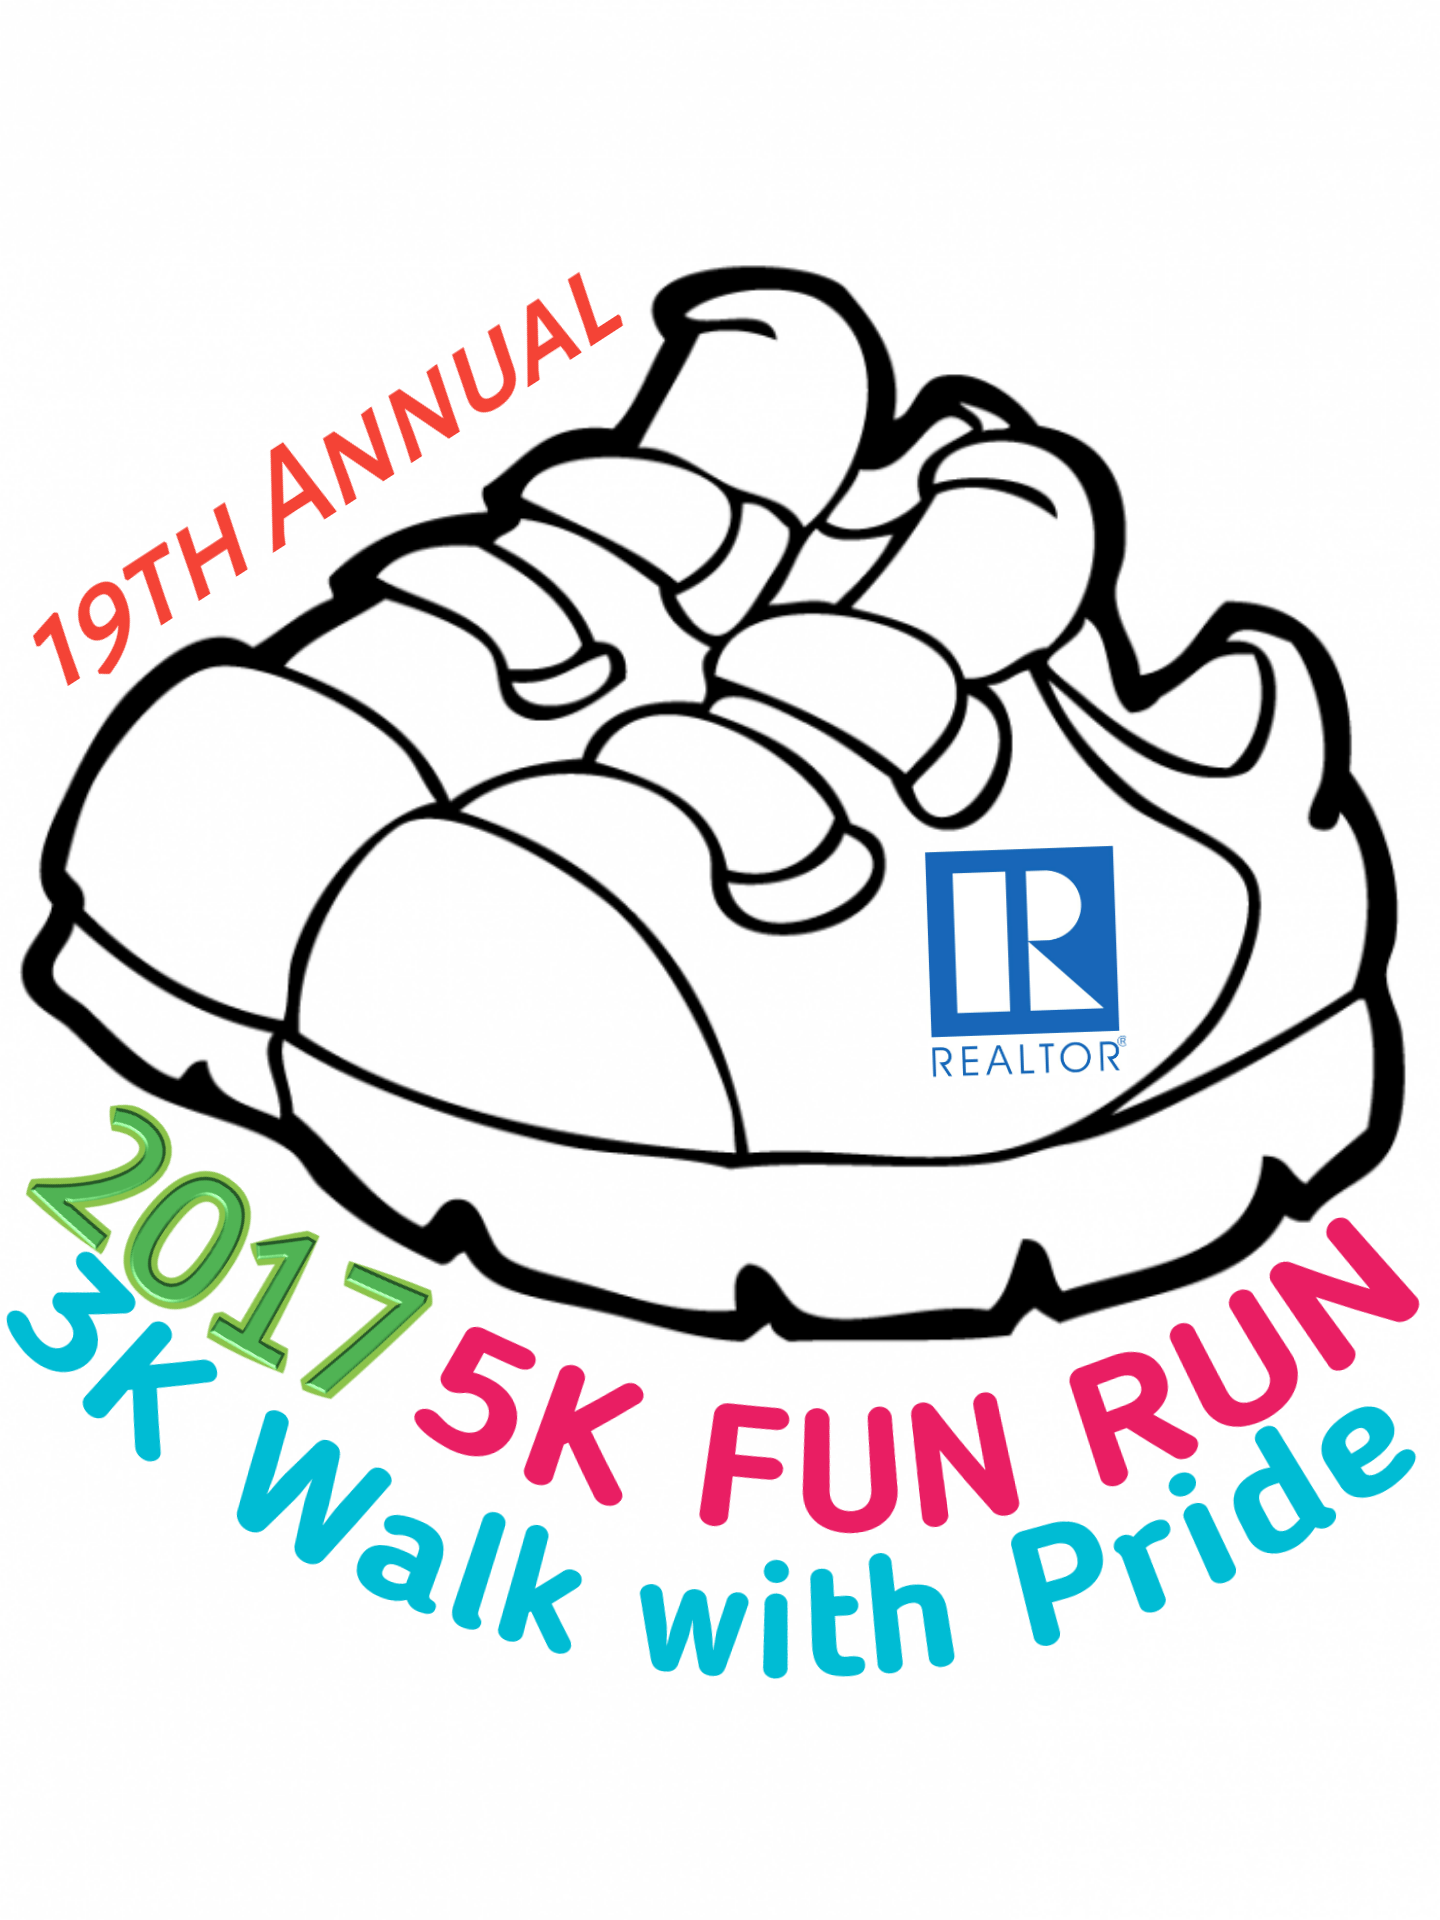 3k fun run clipart free, Free Download Clipart and Images.